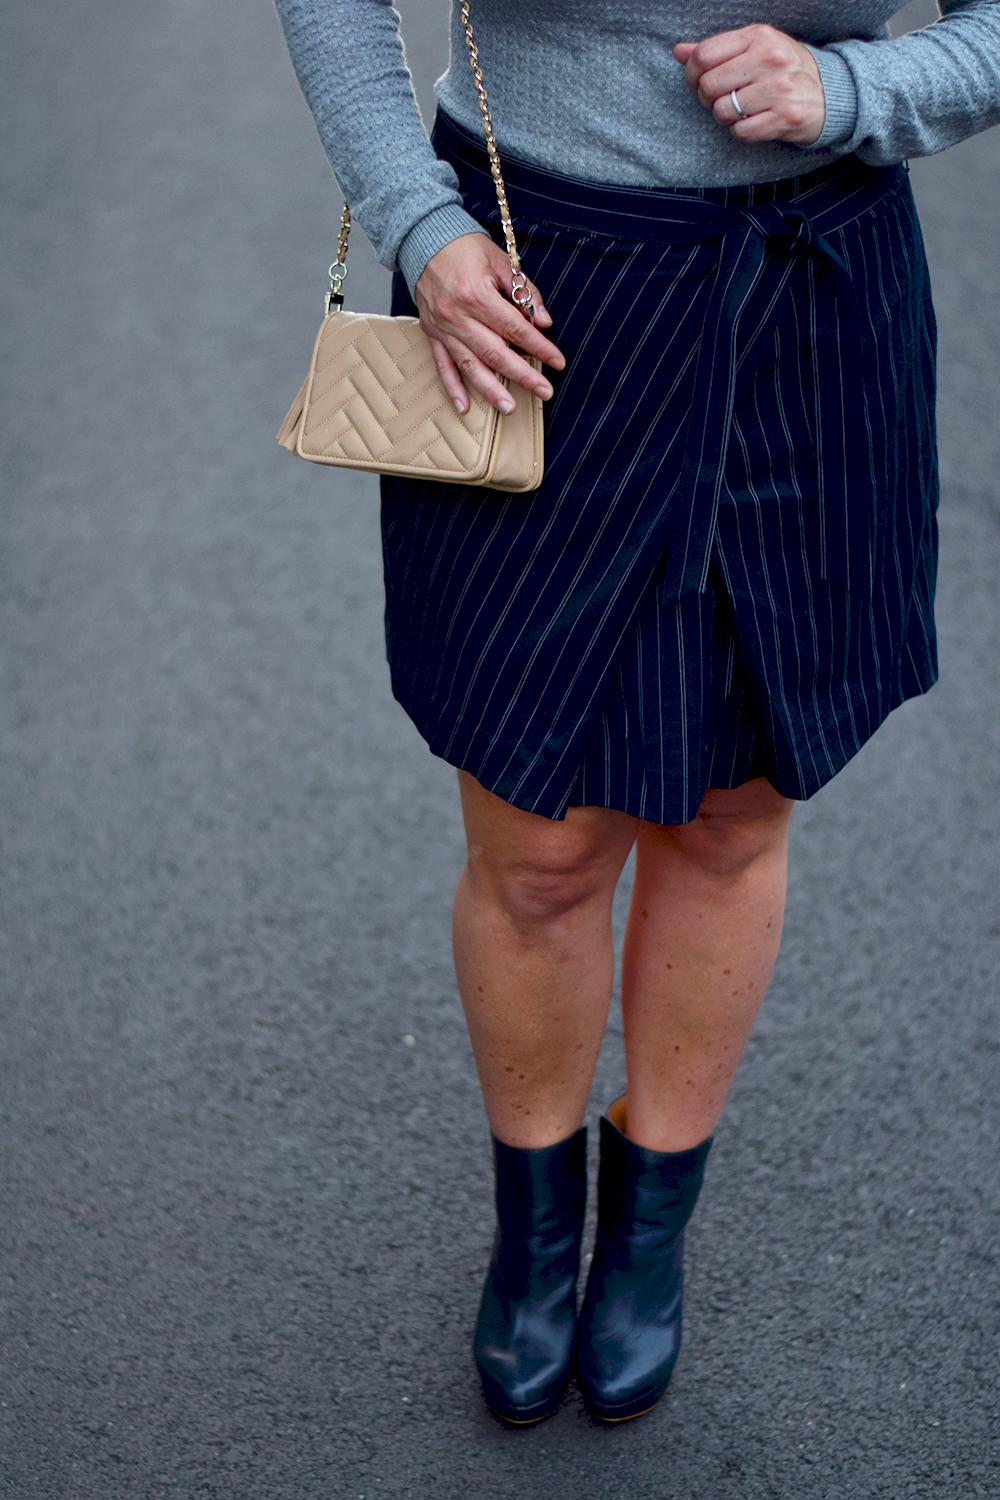 Zara-Blue-Platform-Booties-Outfit-Barefoot-in-LA-Fashion-Blog-Style-Ideas-0127